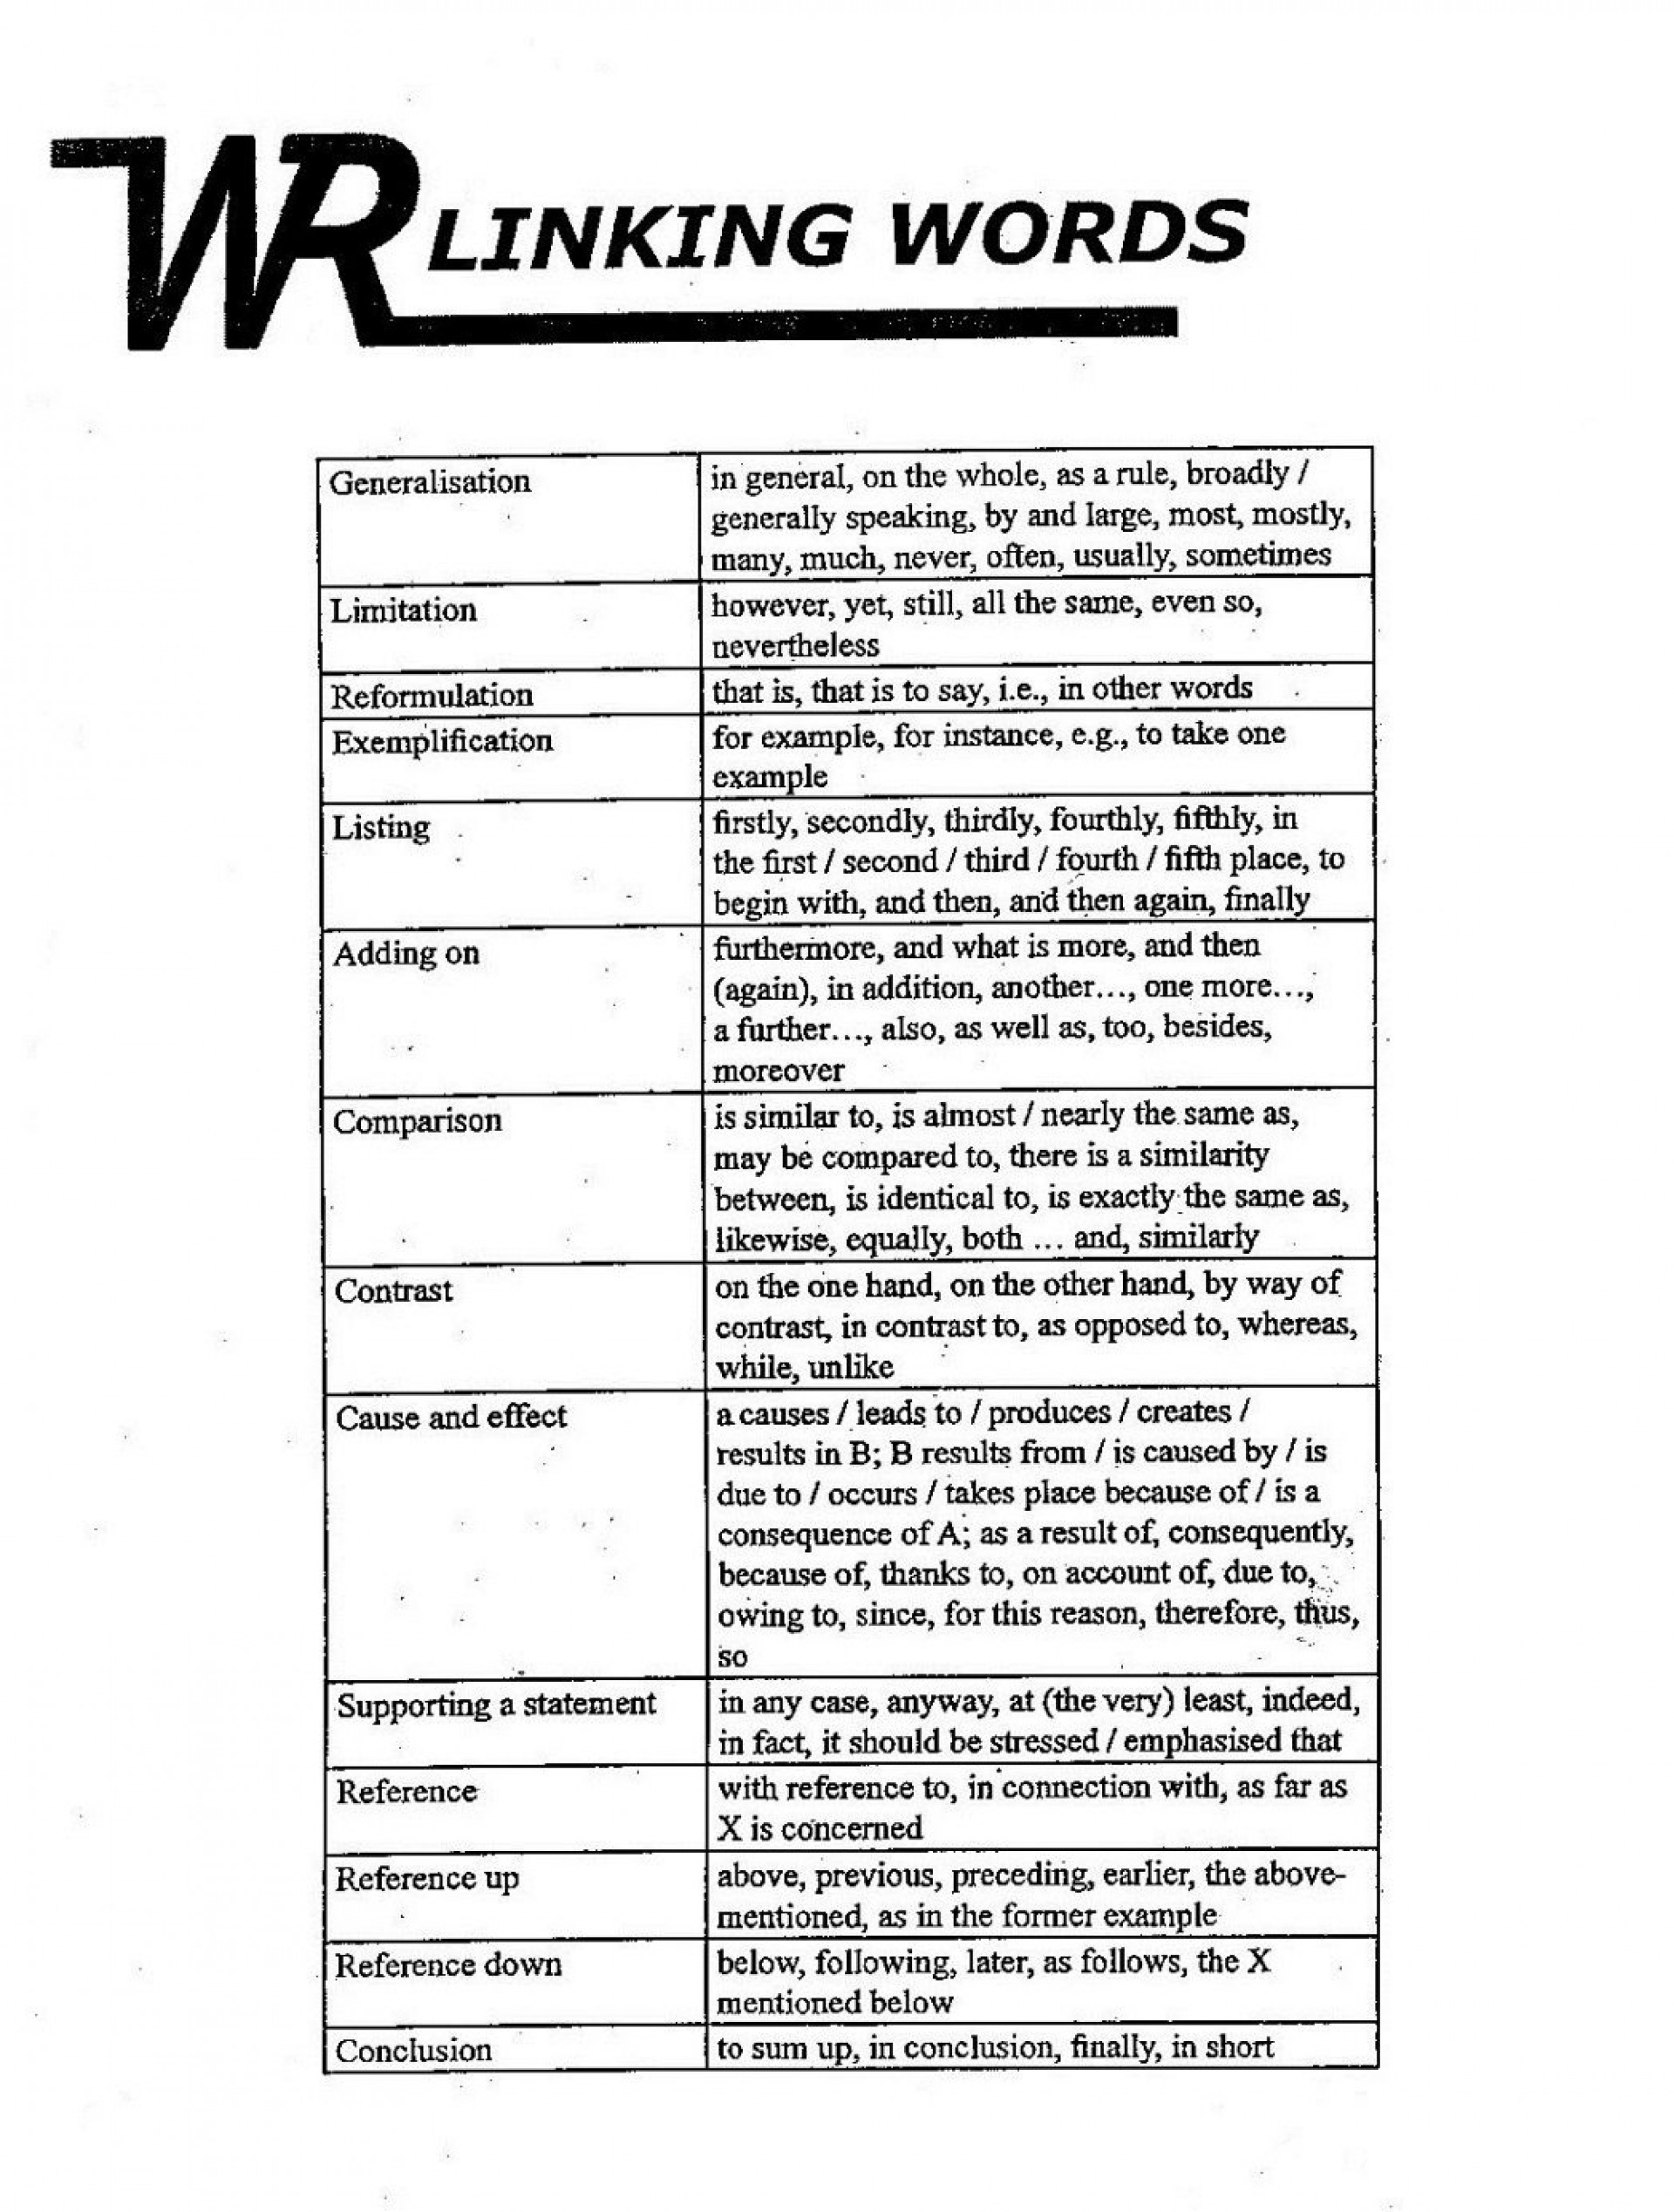 010 Word Essay Introduction Words For Essays How To Write Formal Linking 1048x1385 Excellent 750 On Respect Double Spaced About Yourself 1920